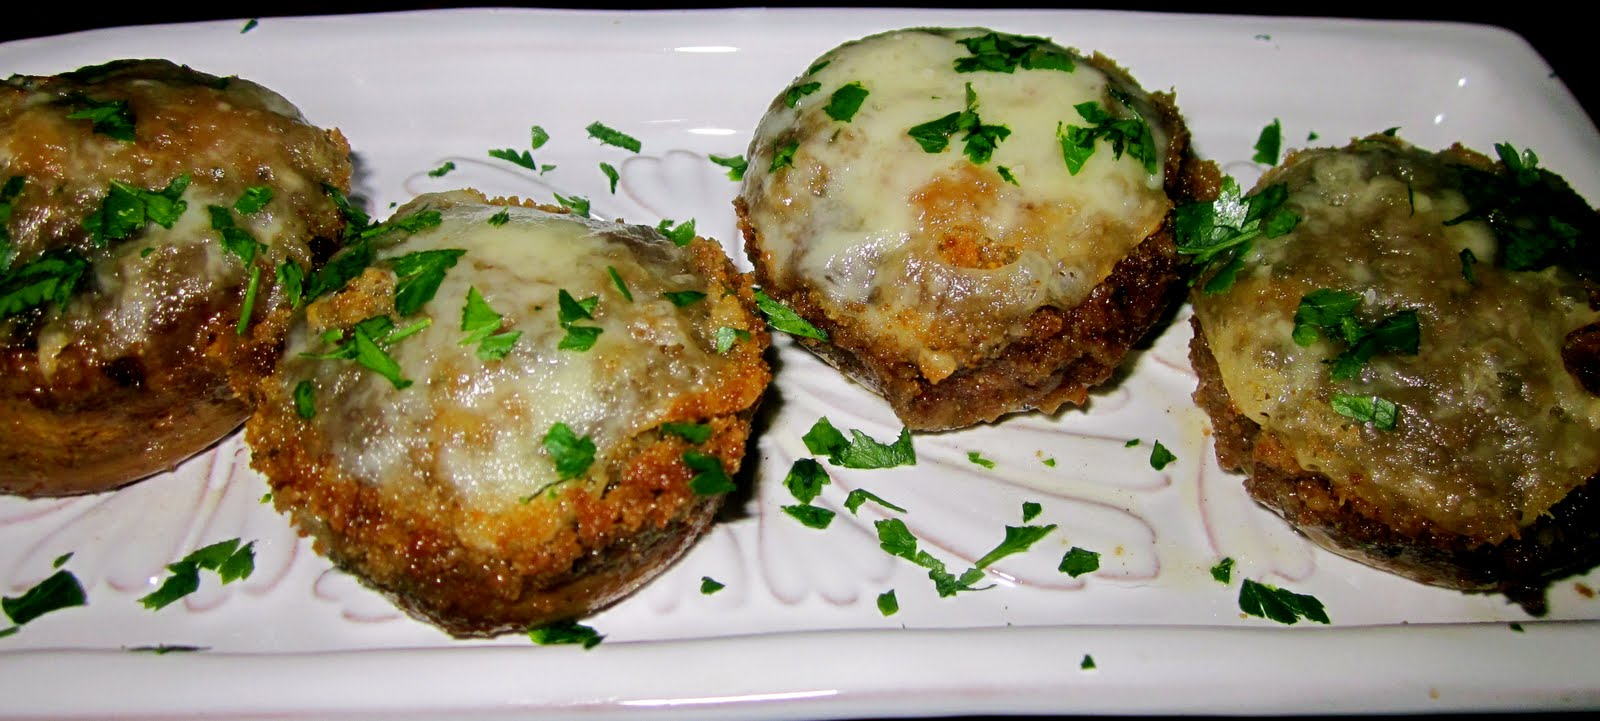 French Onion Soup Stuffed Mushrooms Recipe — Dishmaps